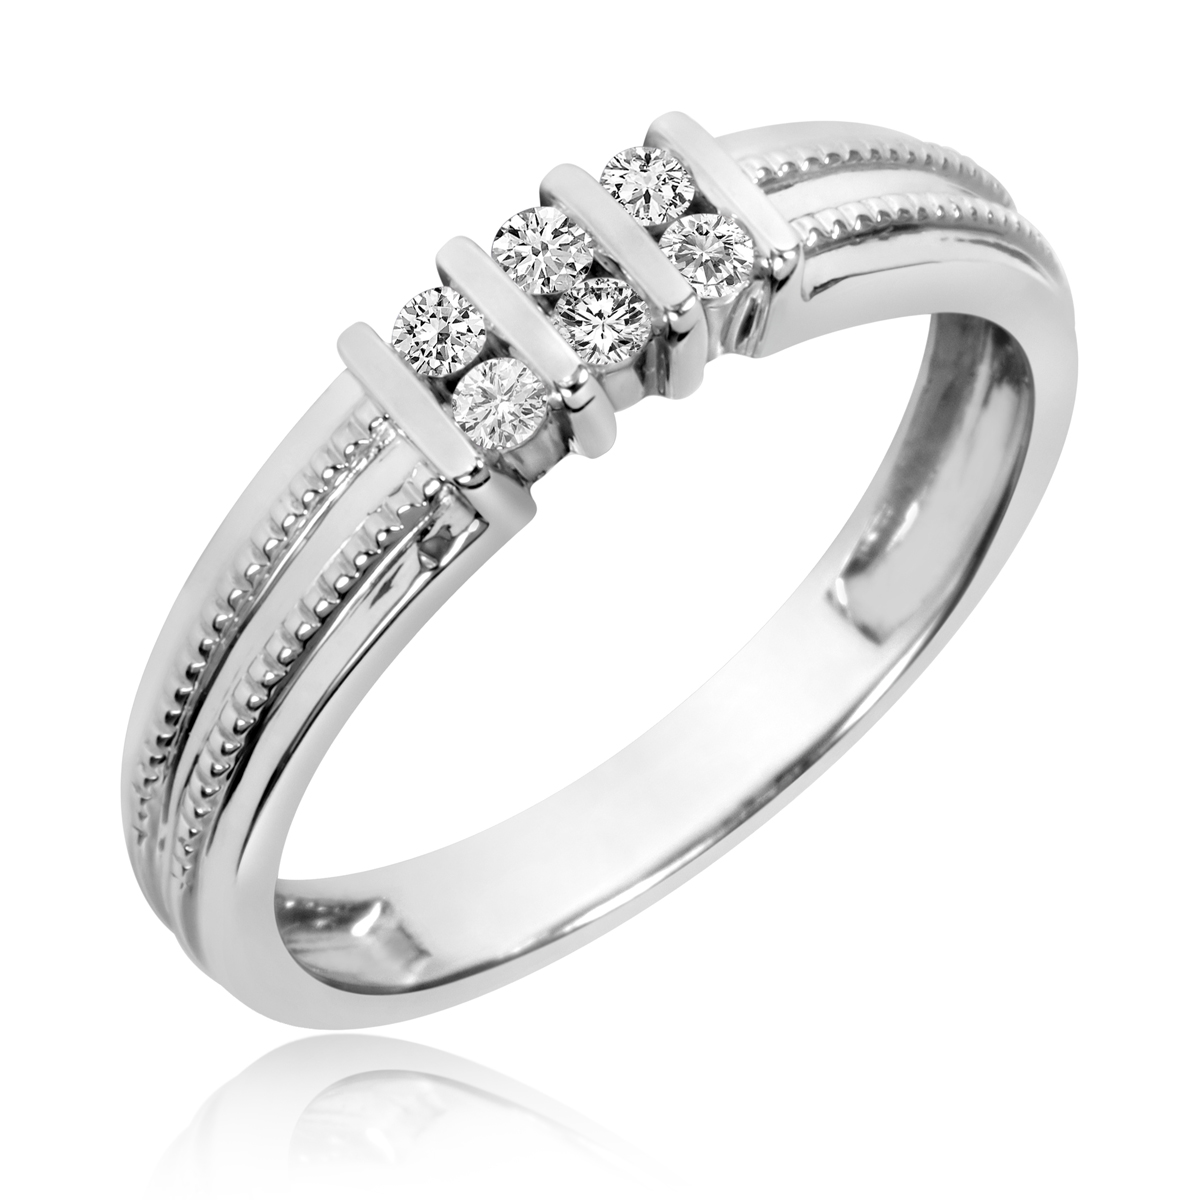 1 5 CT TW Diamond Mens Wedding Band 10K White Gold